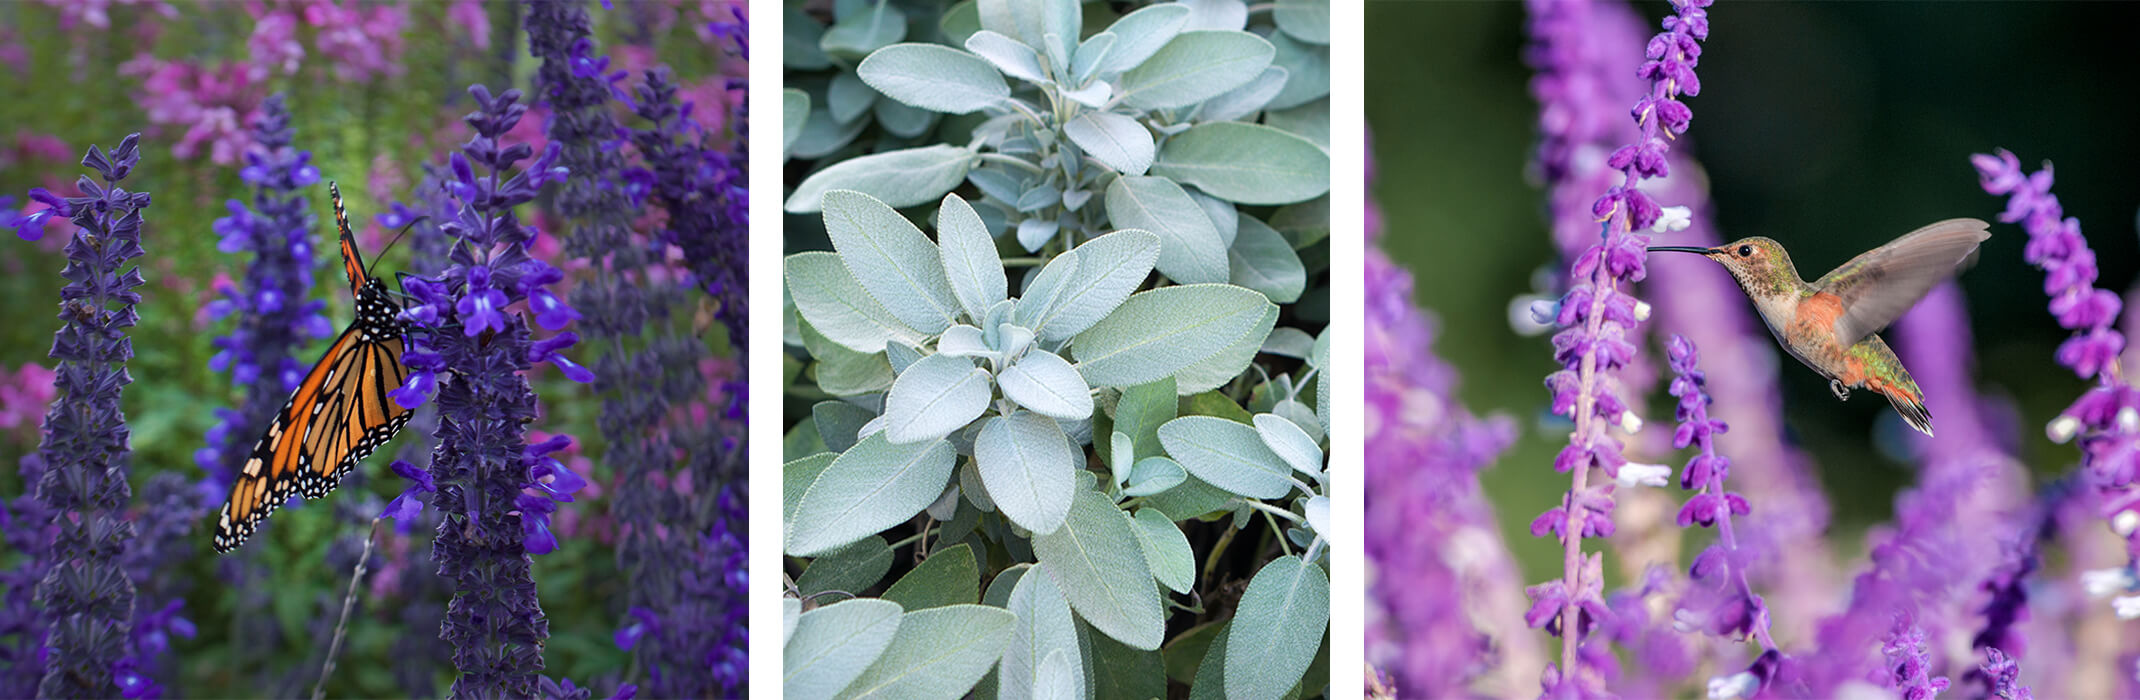 A collage of 3 images: Russian sage with a monarch butterfly, edible sage, and Salvia leucantha with hummingbird